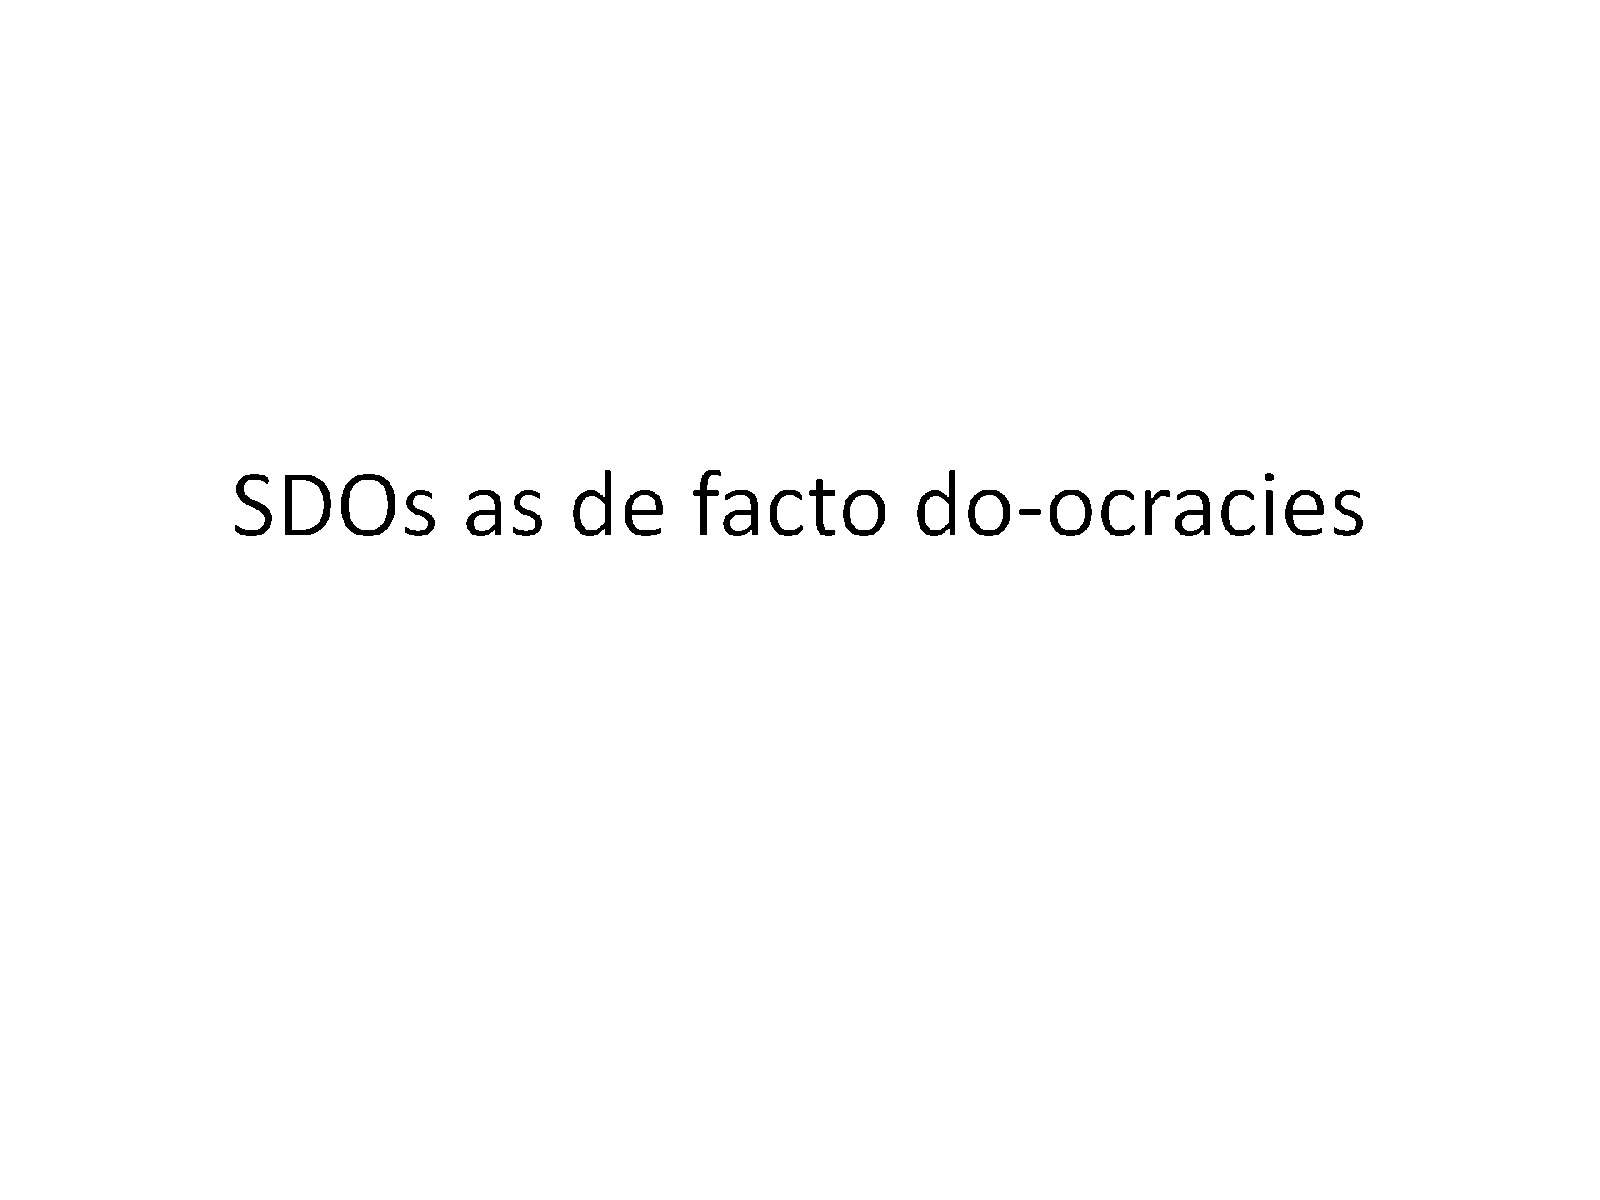 SDOs as de facto do-ocracies — how standards are really made